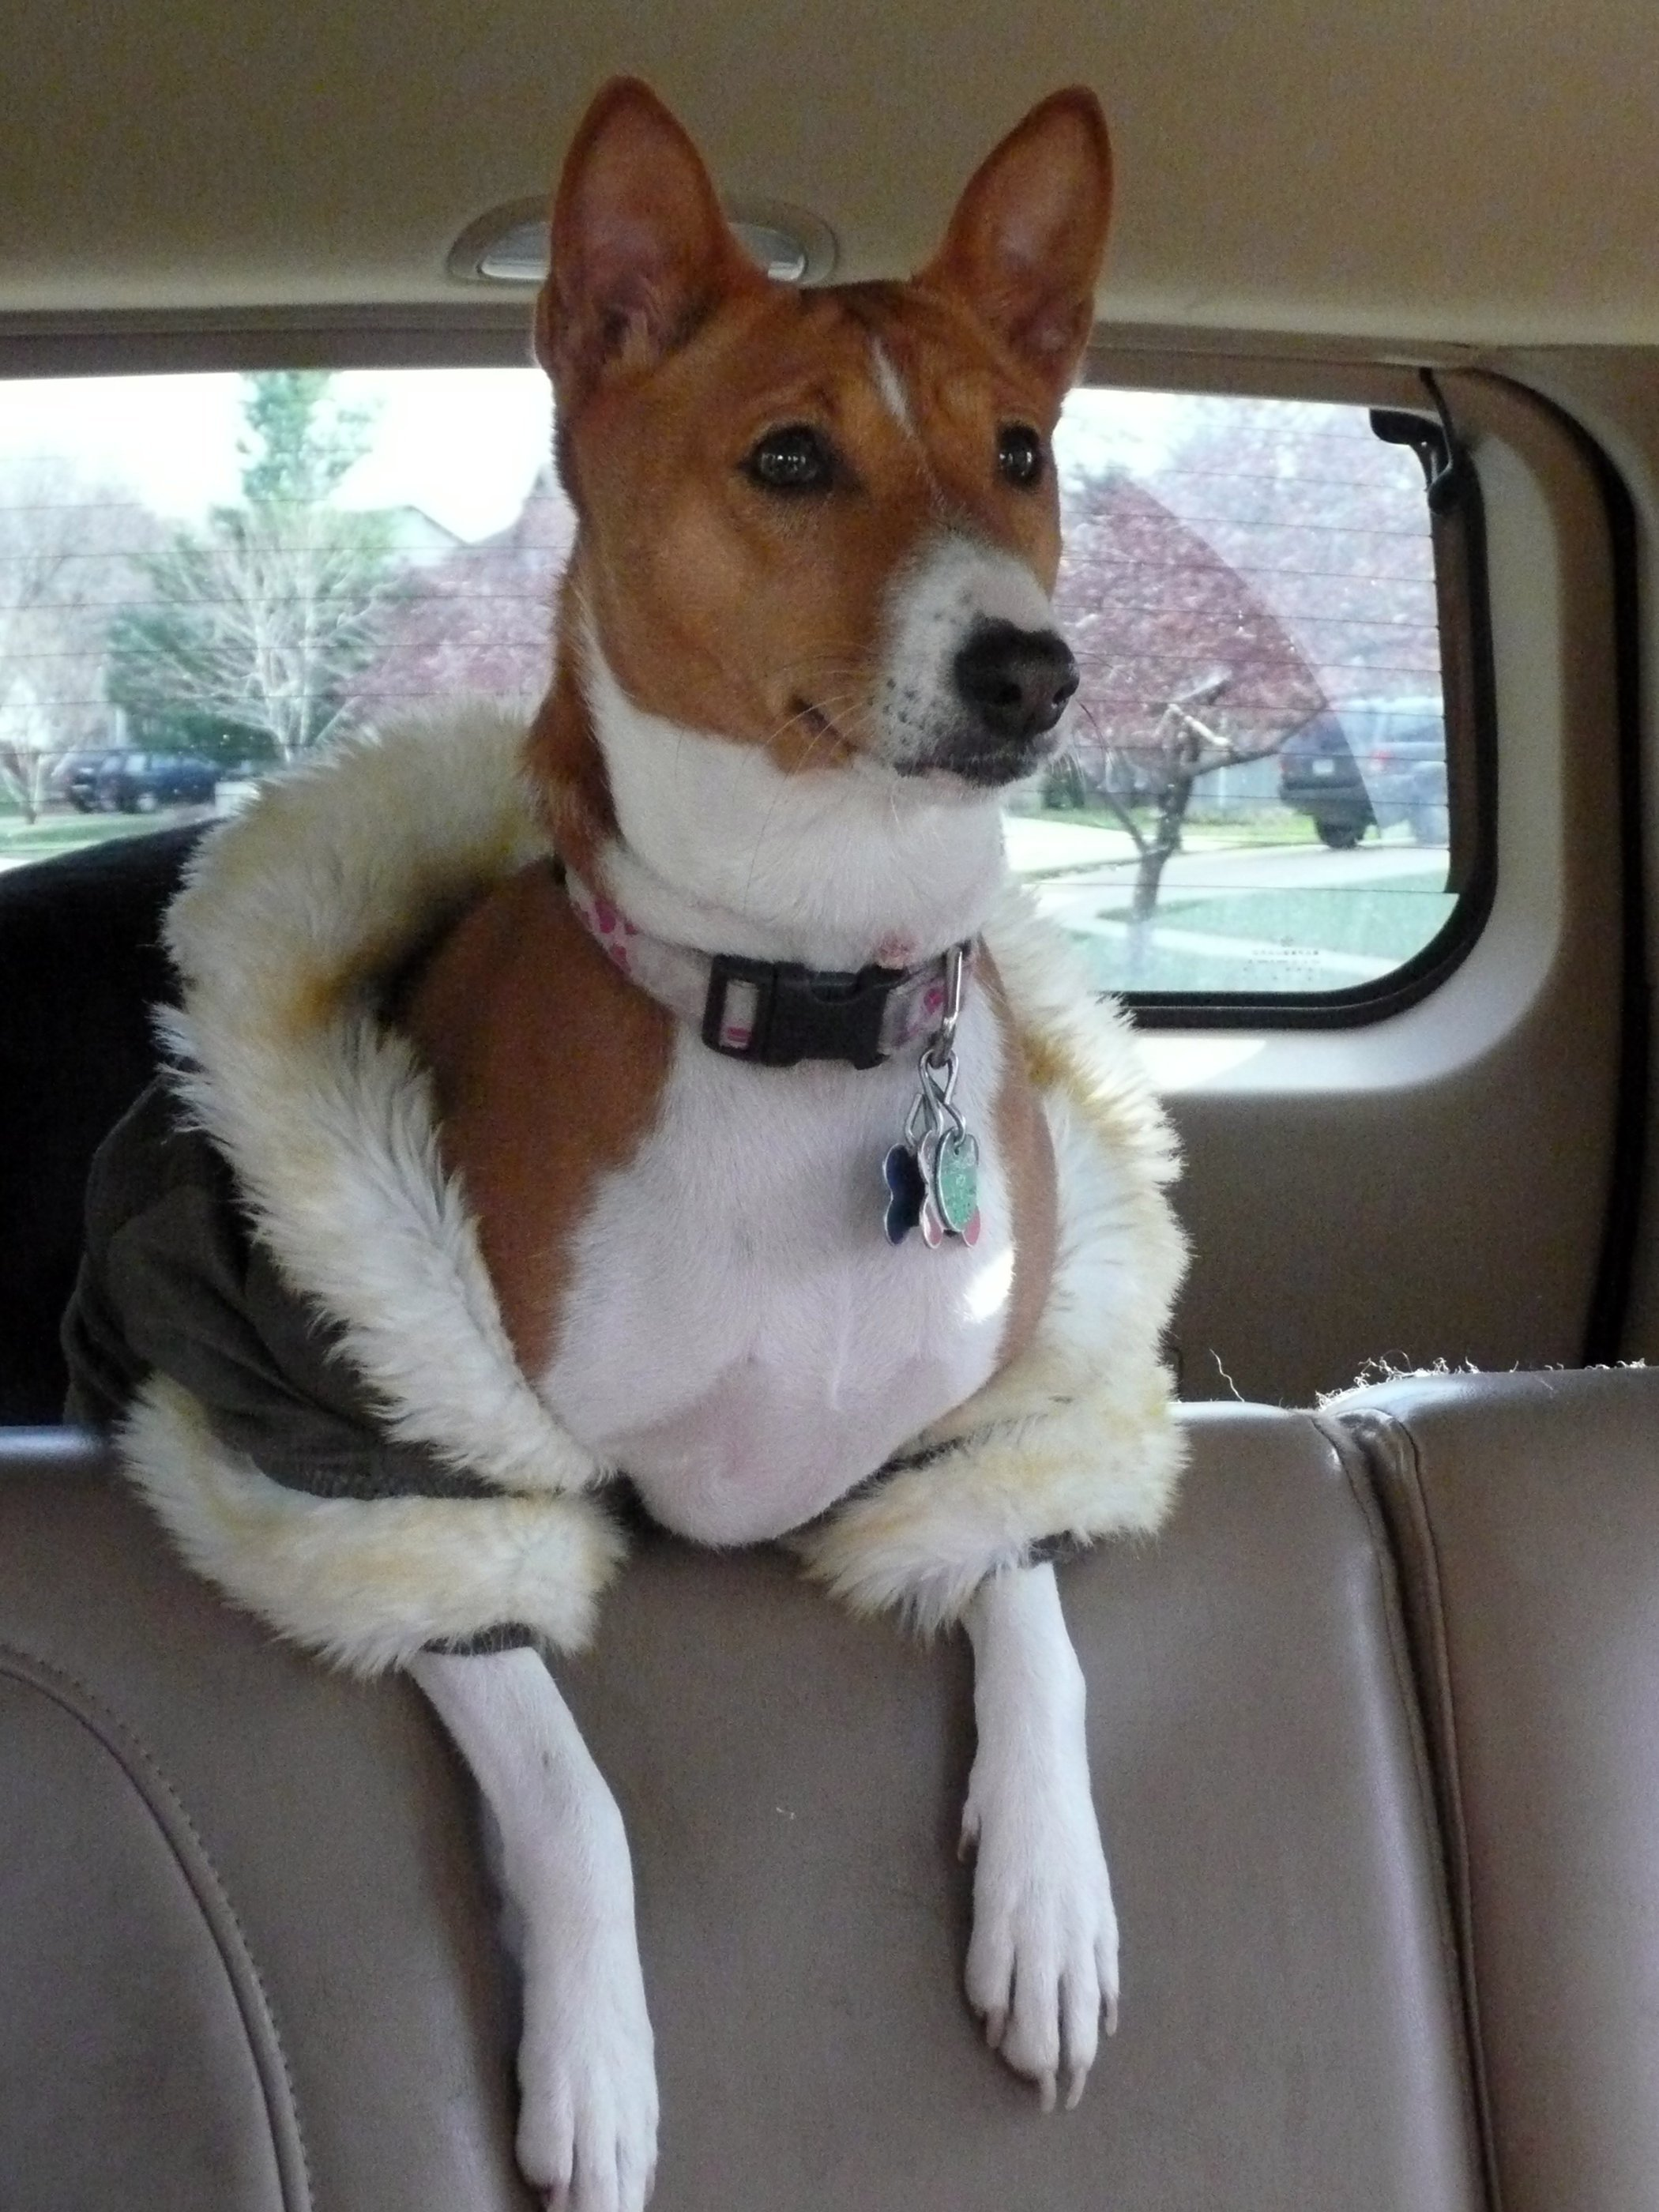 On the way to the dog park. All she needs is a tiara | Animals Zone